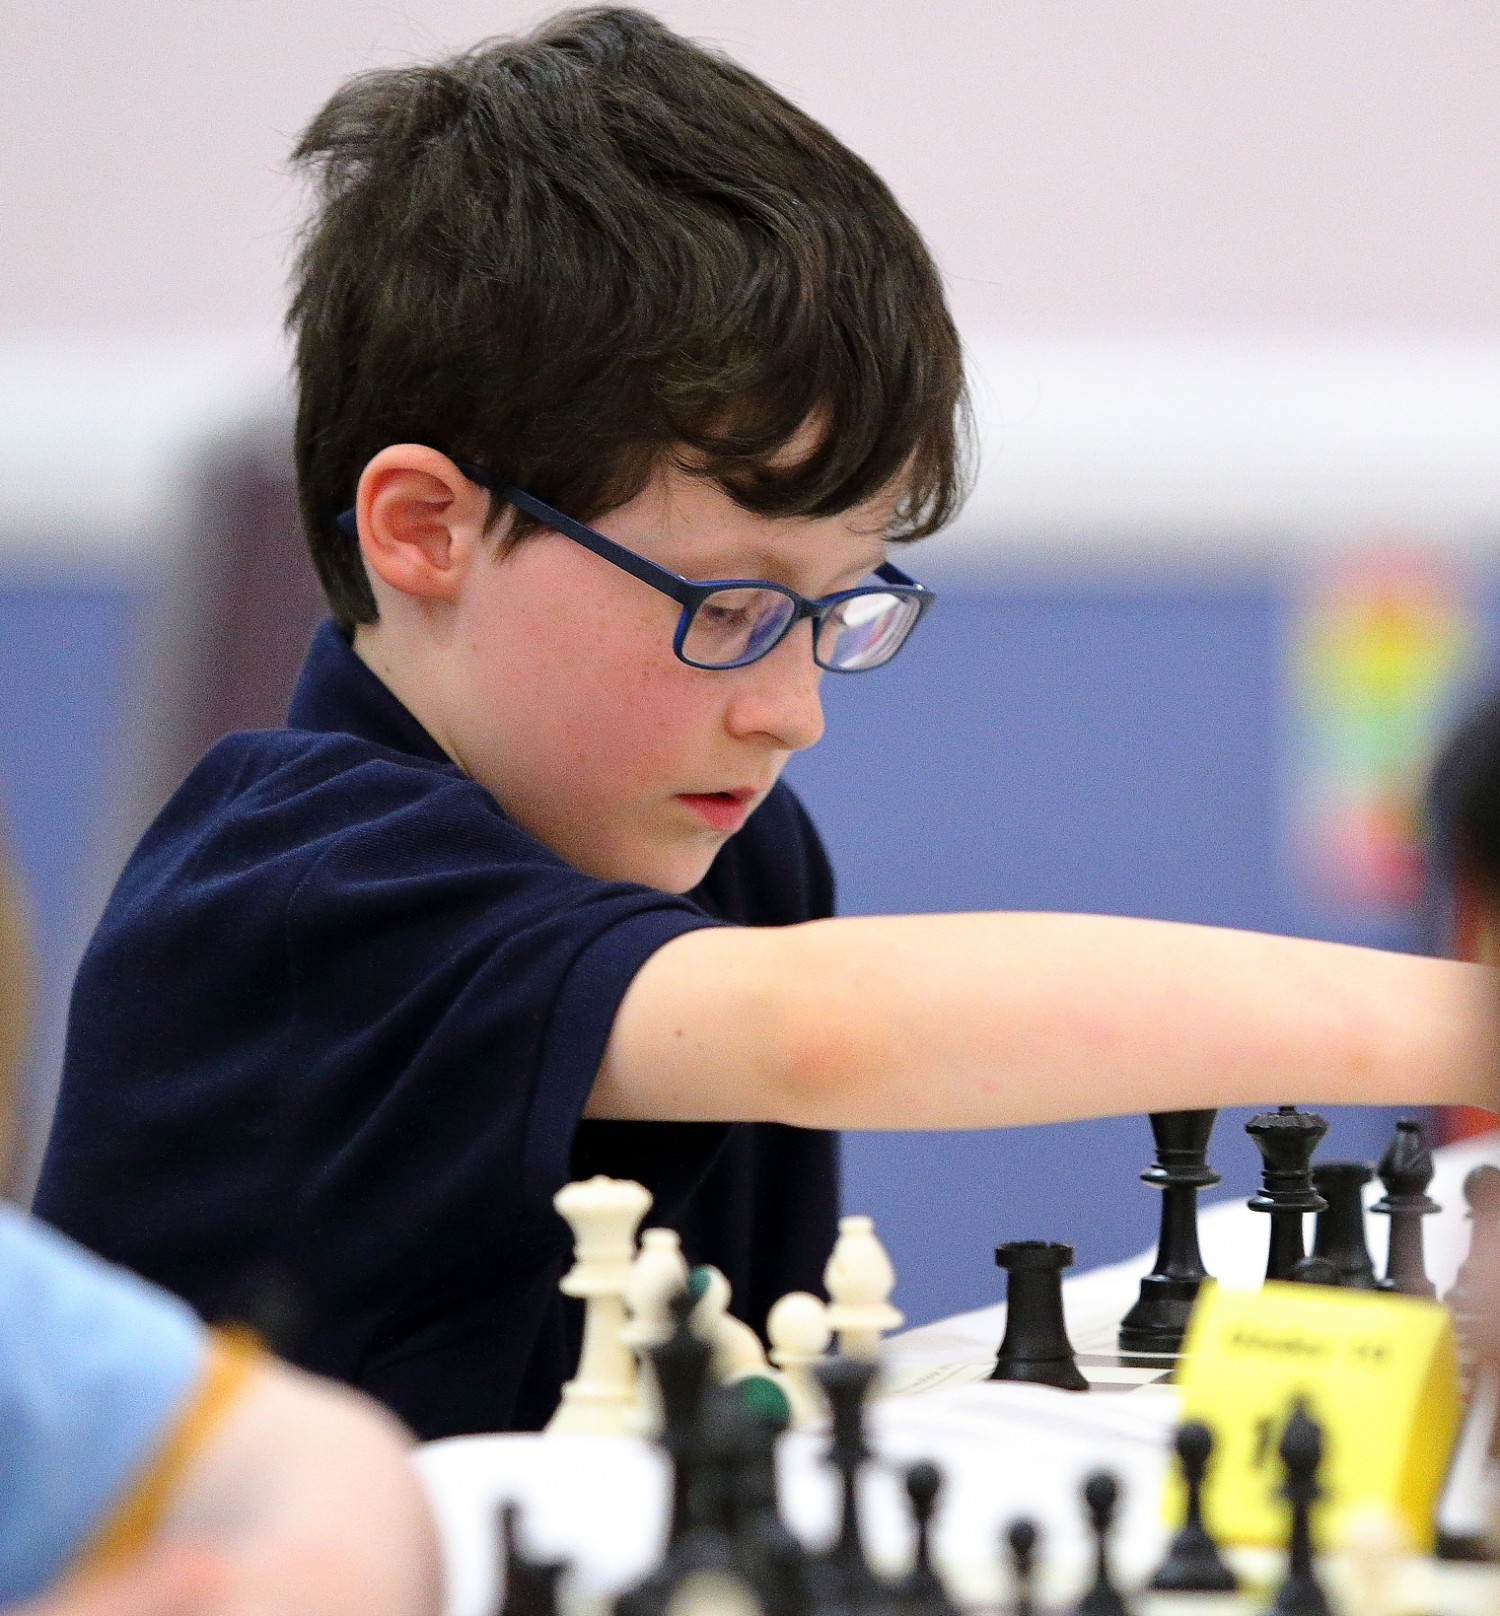 Junior-Chess-Championship.jpg